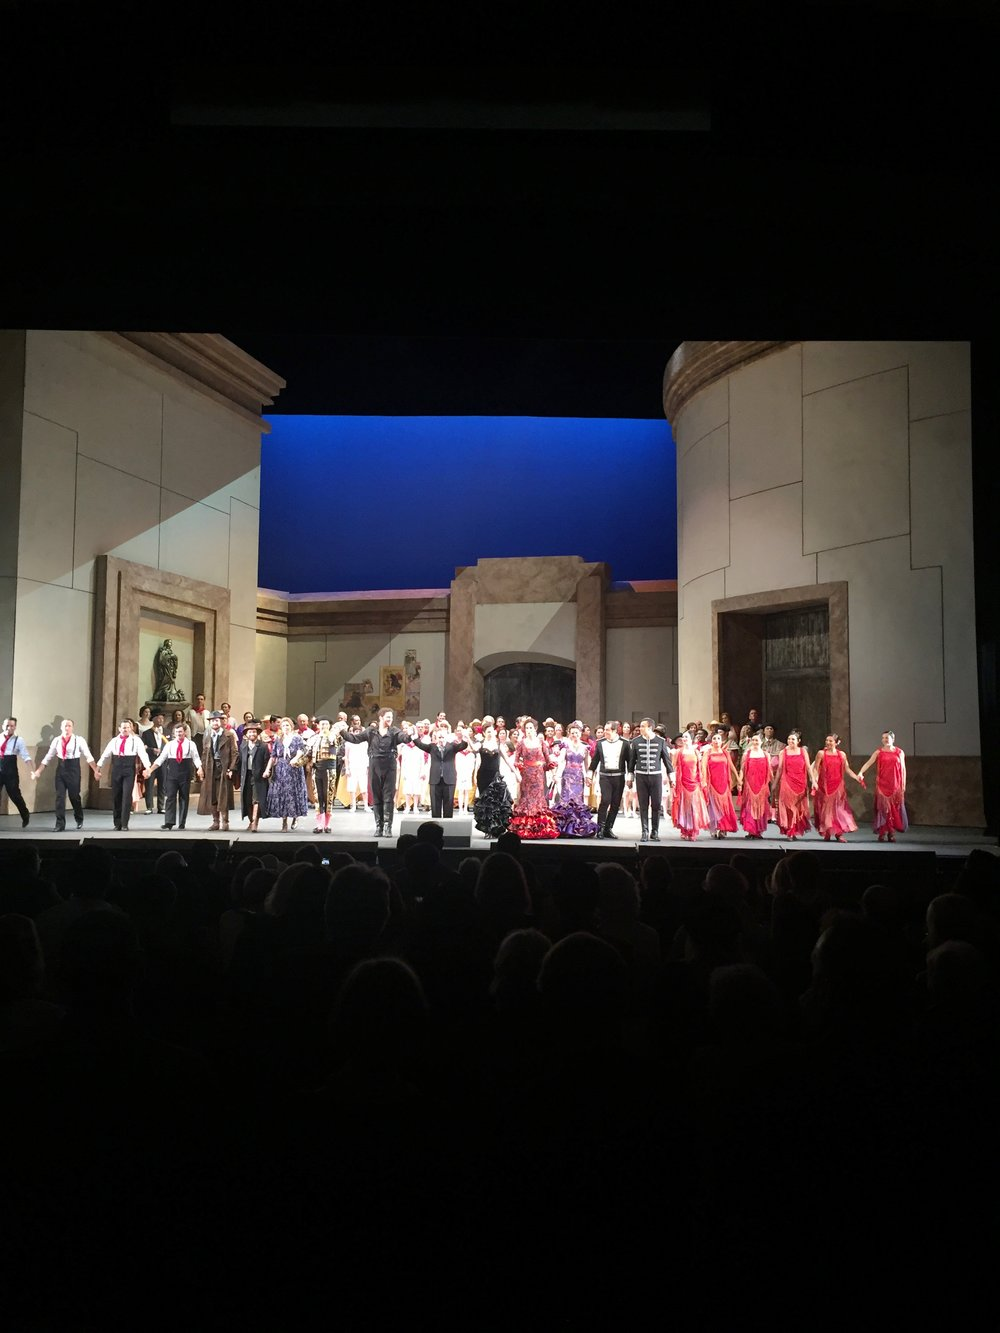 Taking a bow at the end of Carmen